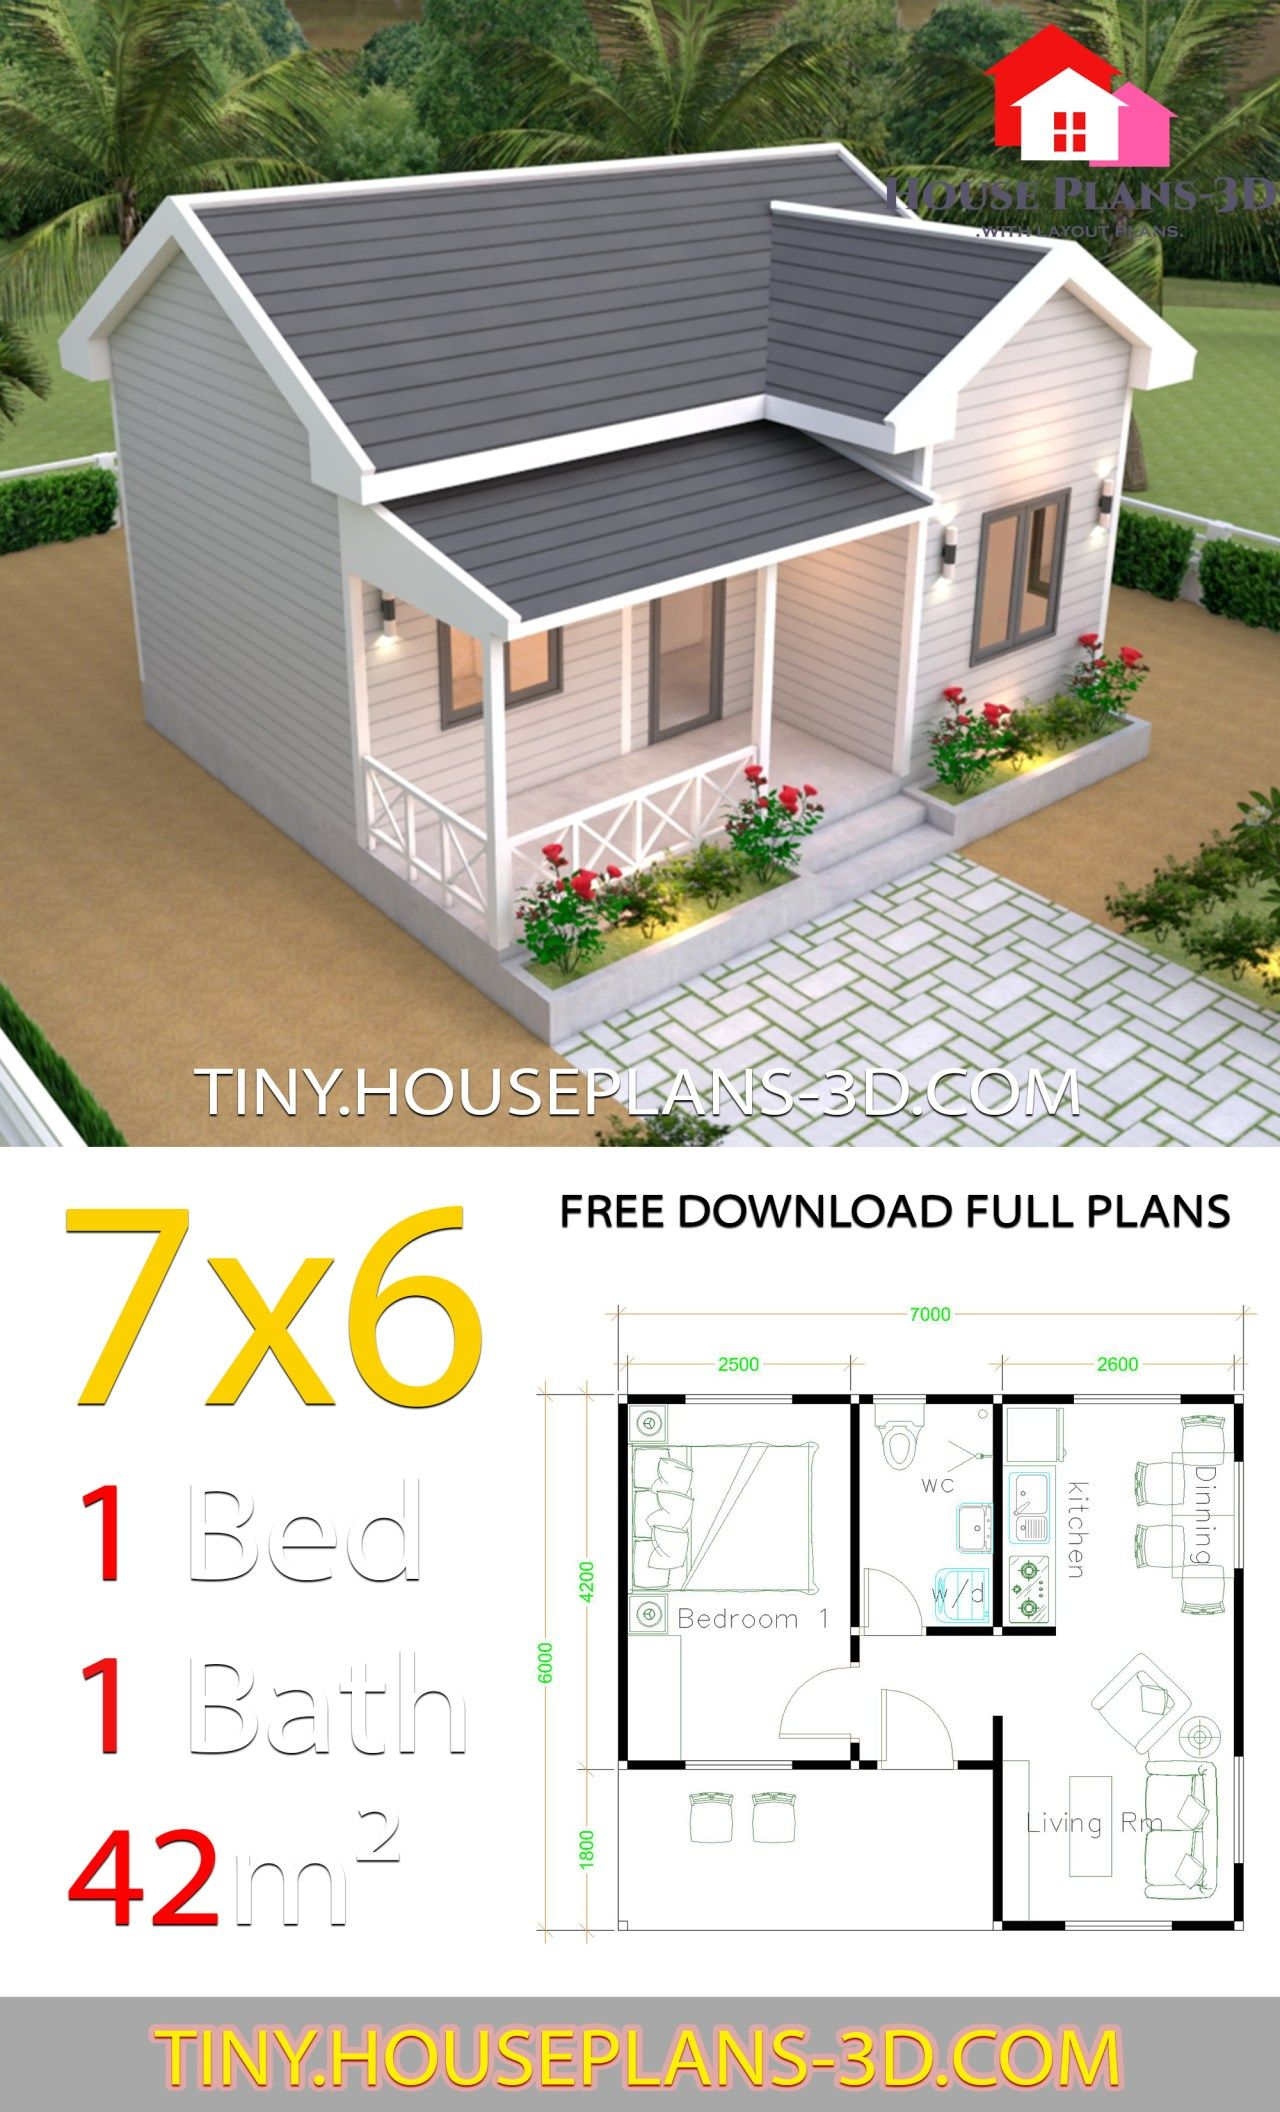 Tiny House Plans 7x6 With One Bedroom Cross Gable Roof Tiny House Plans Tiny House Plans Small House Layout Sims House Plans